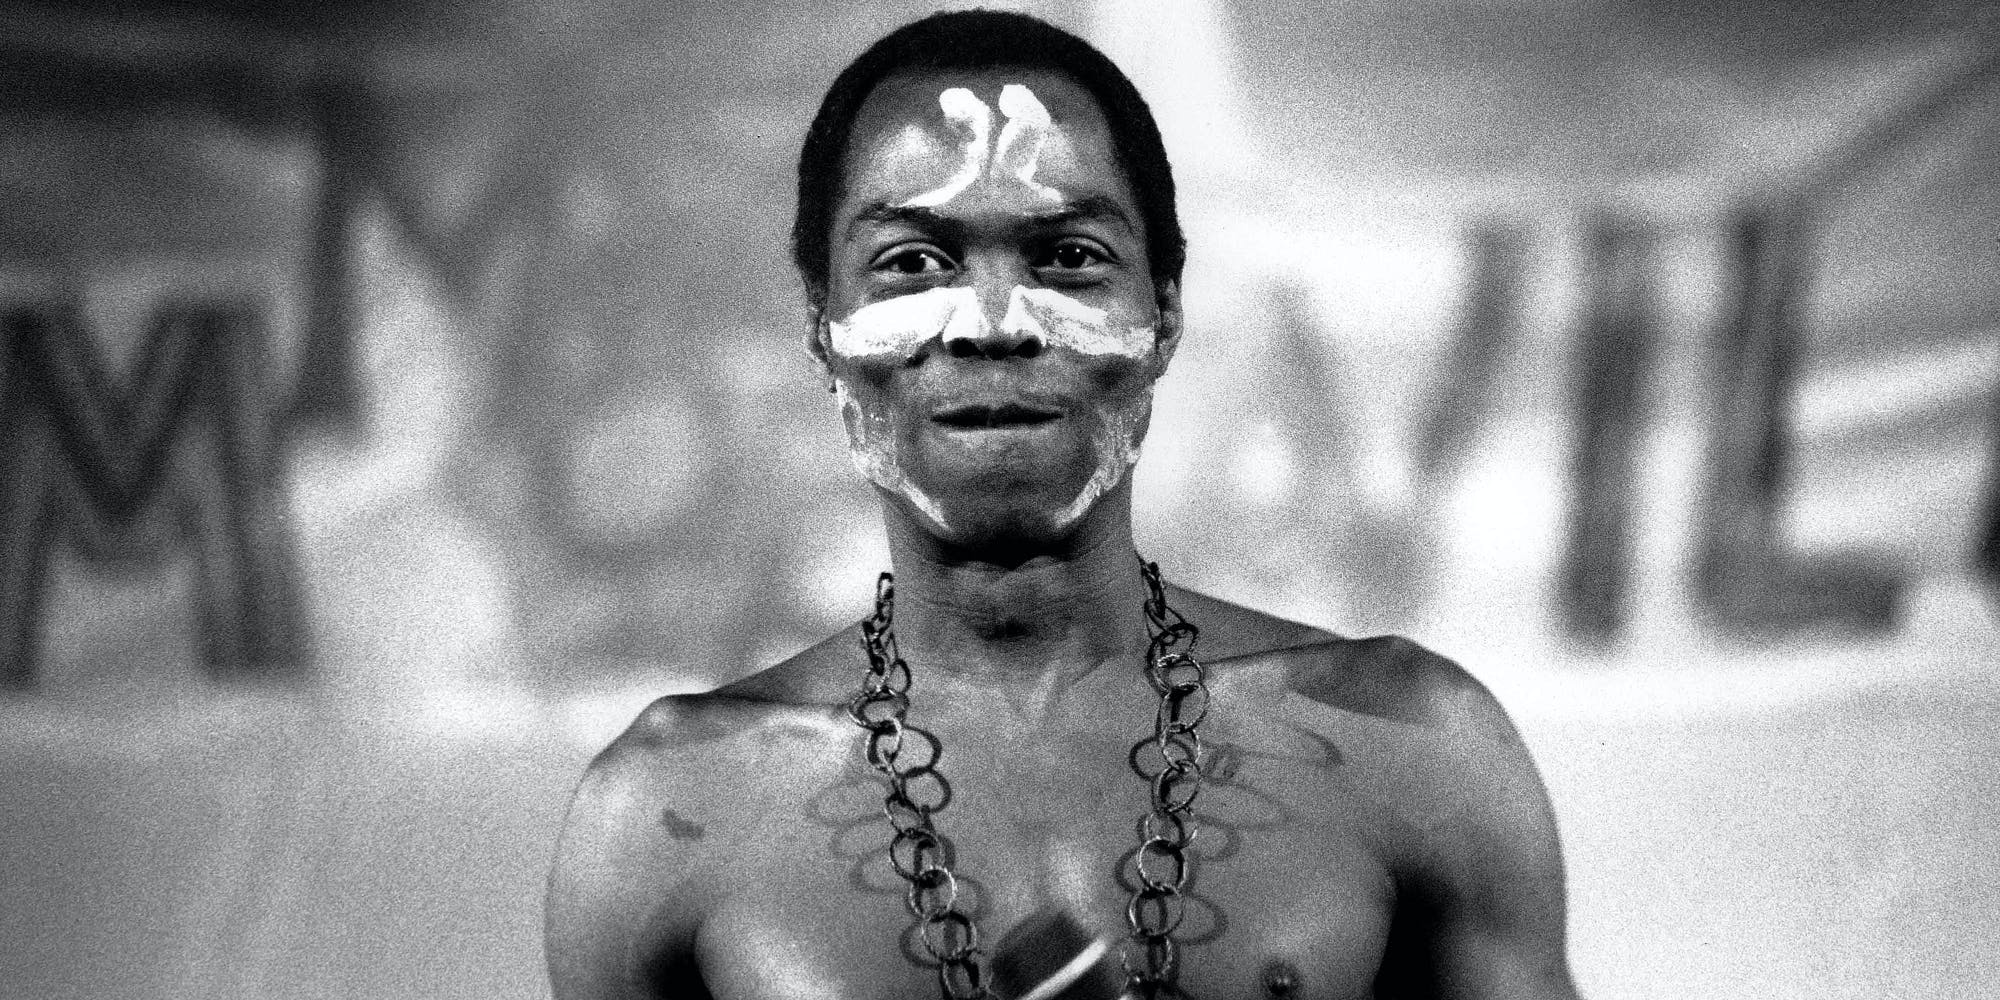 Fela Kuti once ate a joint and police waited 3 days so they could test his shit